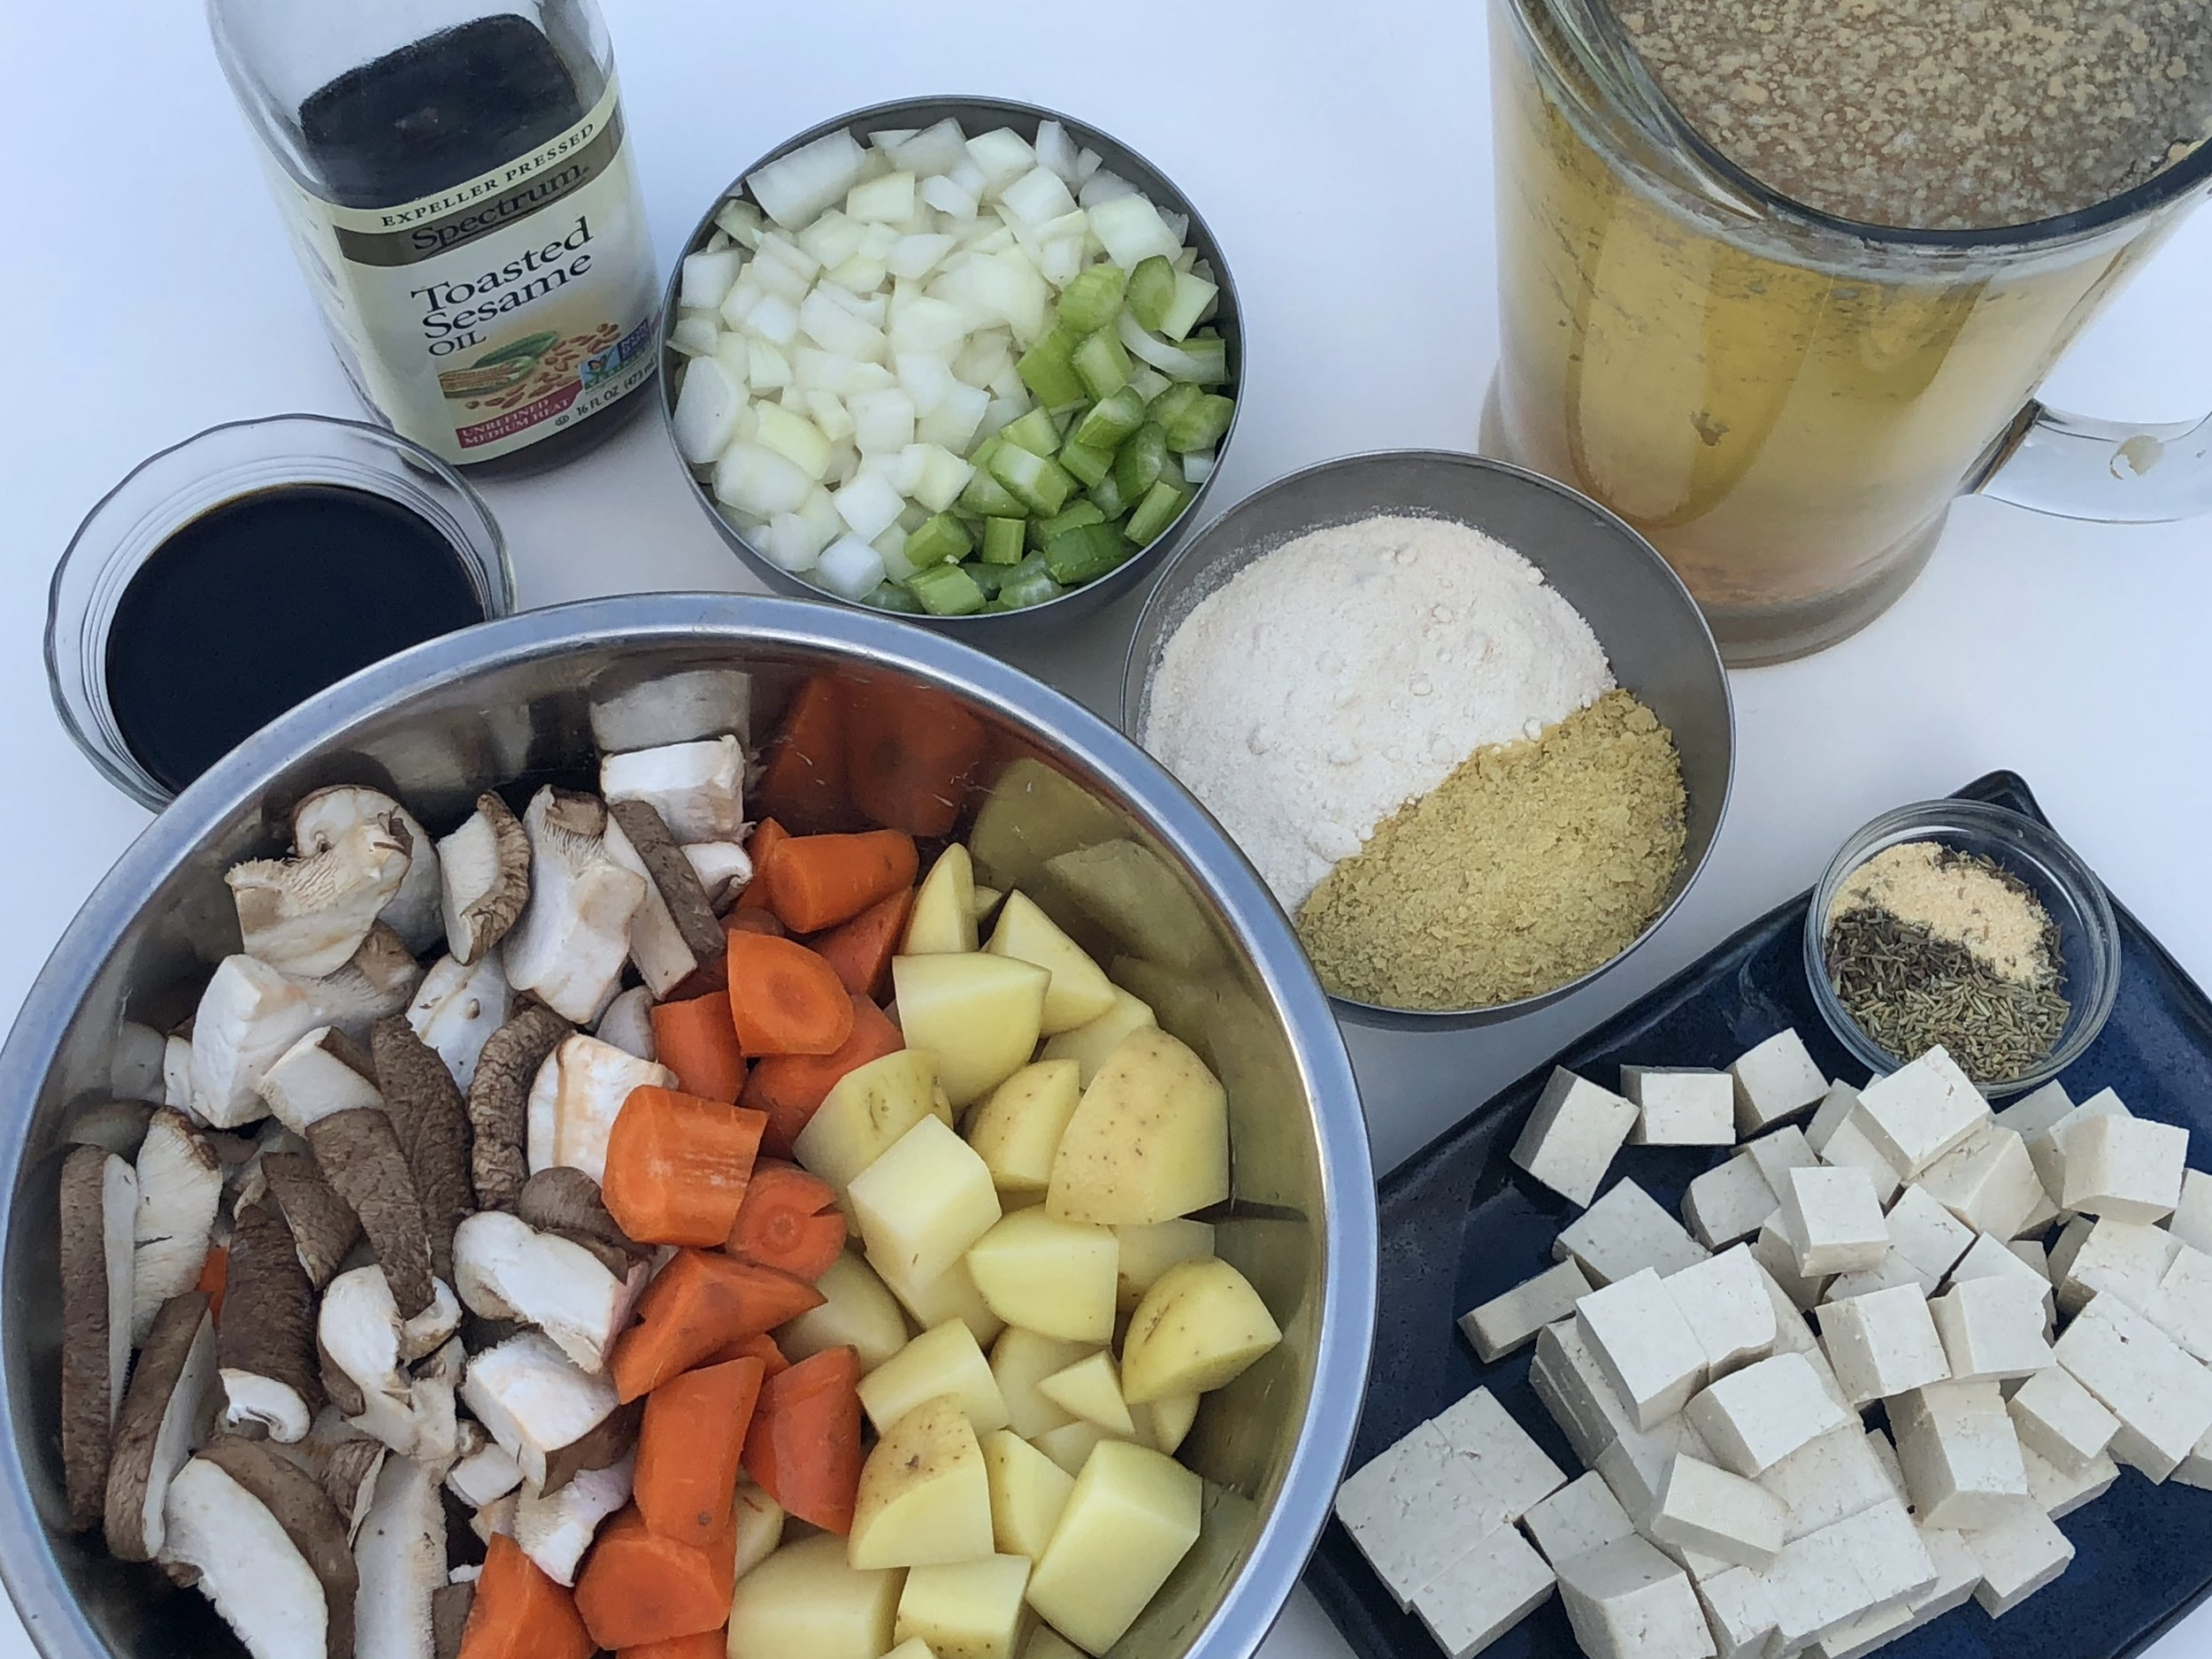 Mise en place-everting in it's place. Soy sauce & vinegar is at the top left, sesame oil, onion & celery, vegetable broth, flour & nooch, spices, cubed tofu, the chopped veggies.